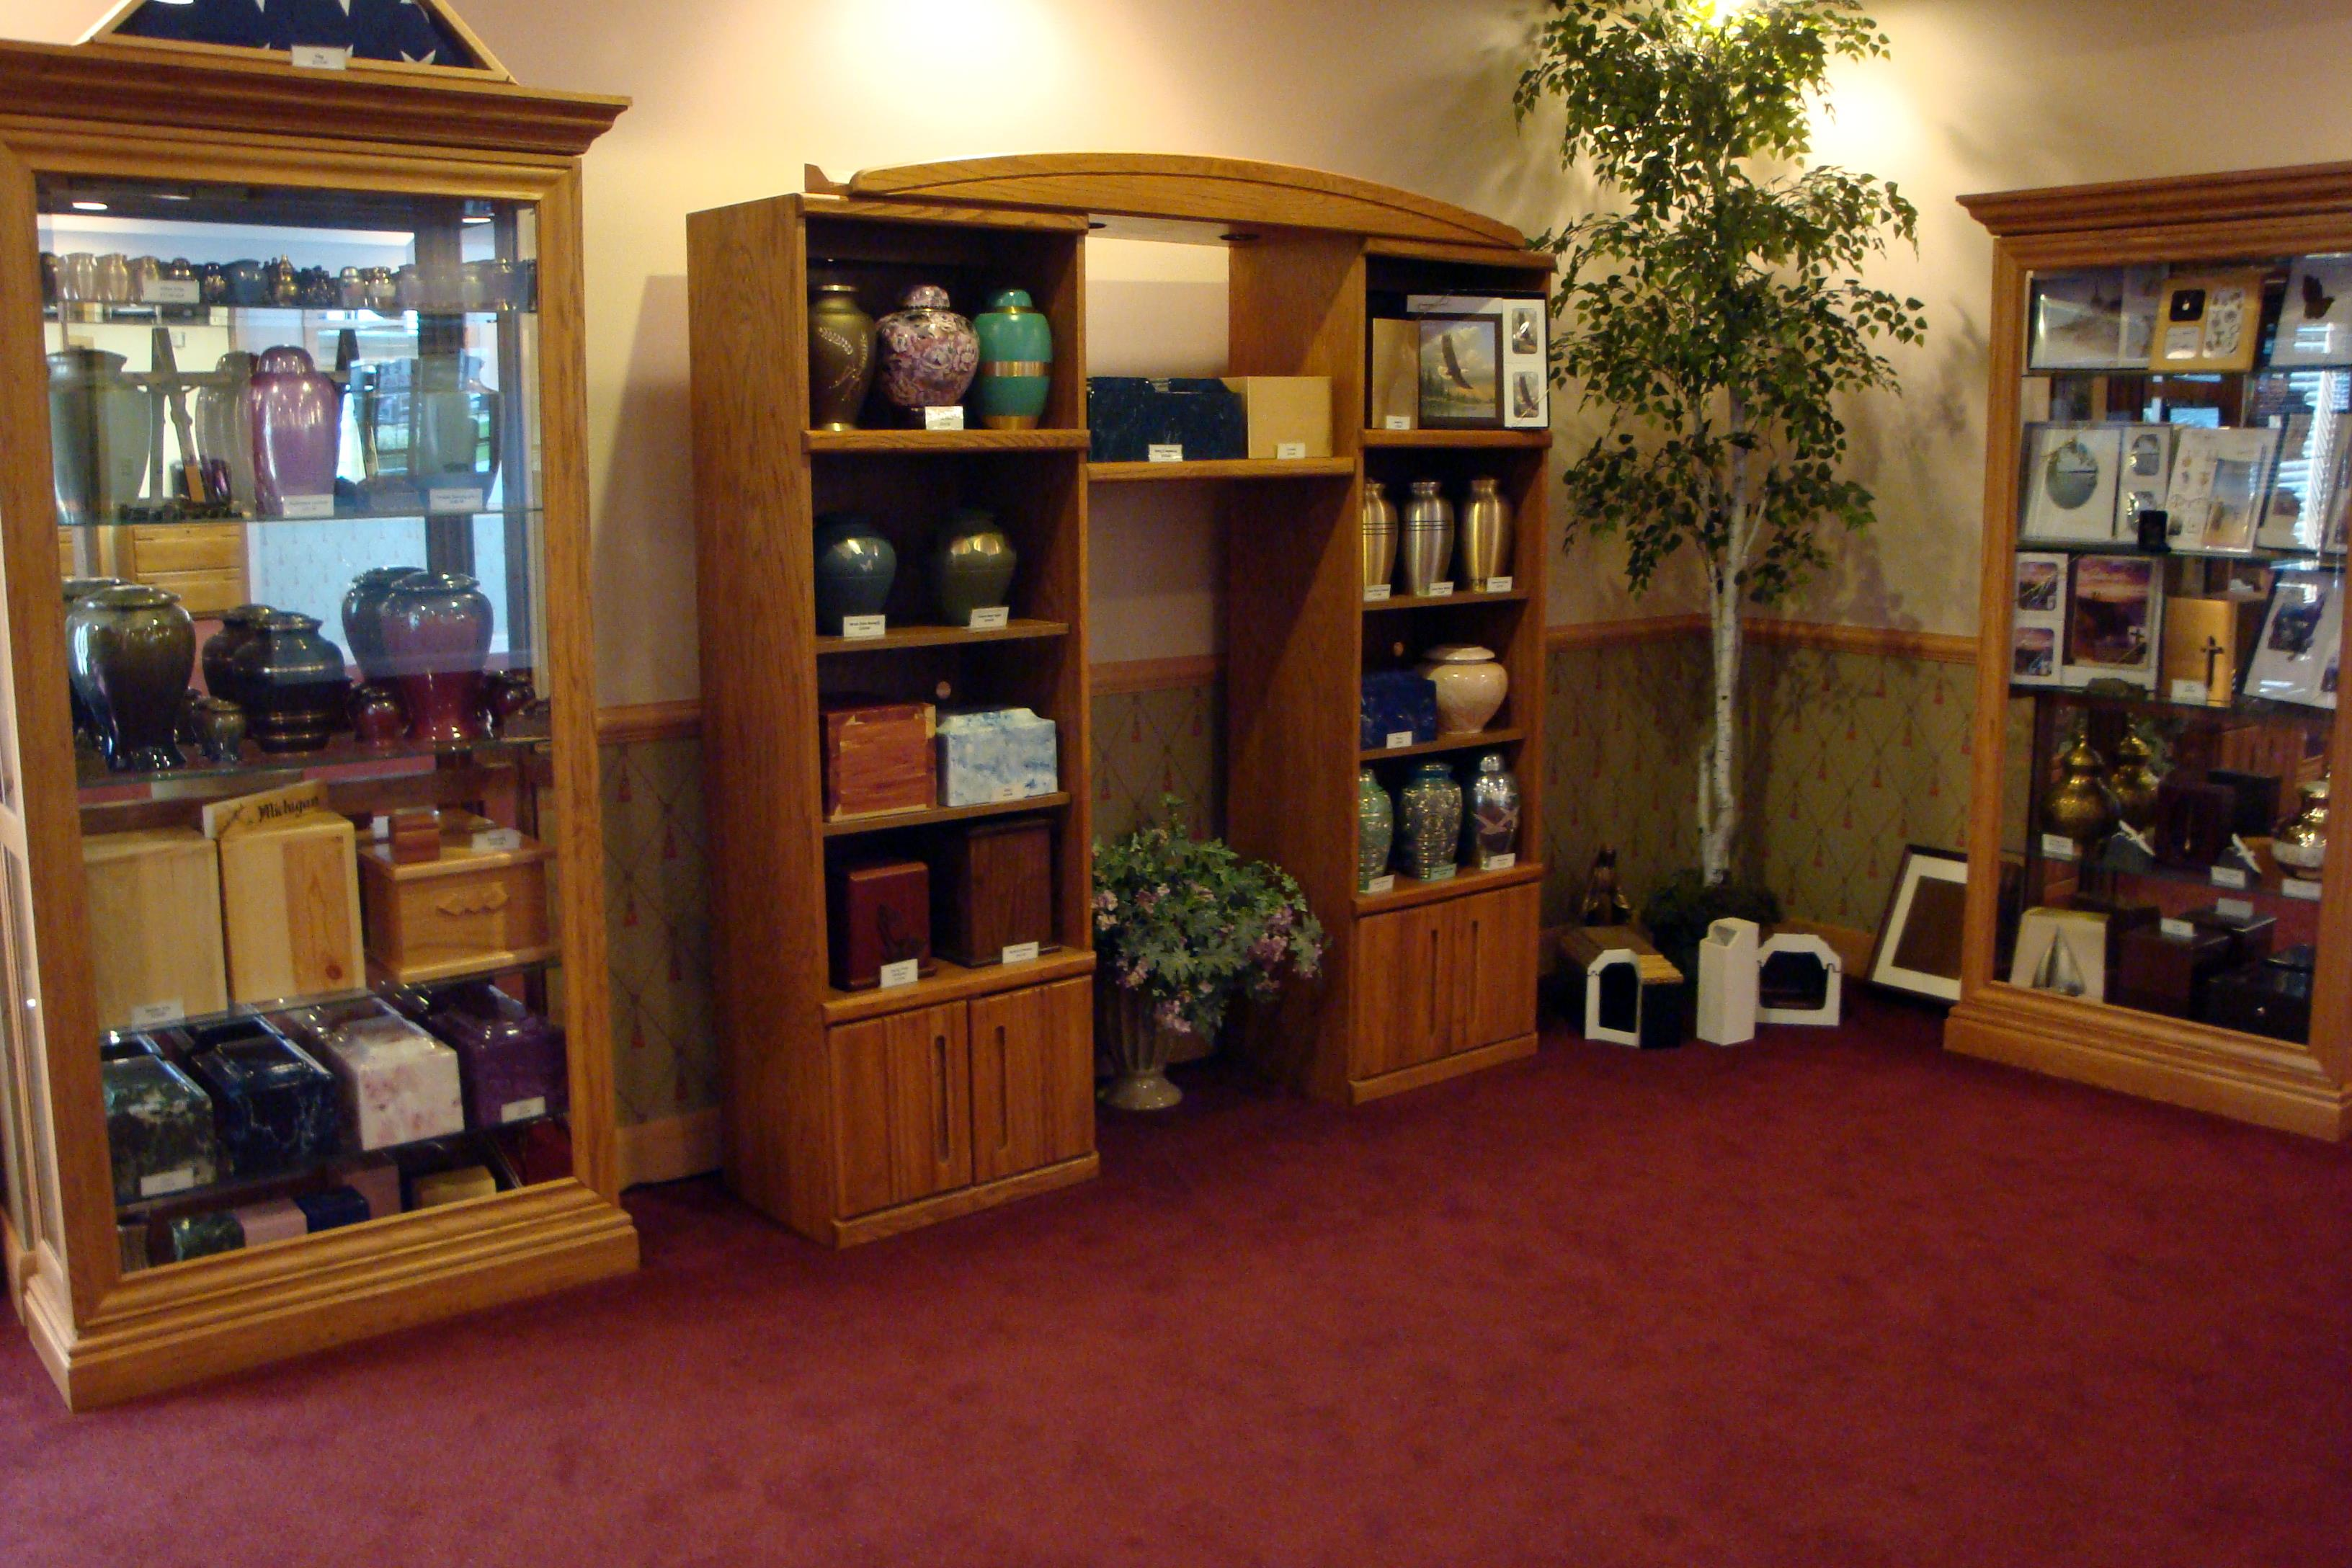 Displays of urns and memorial book packages